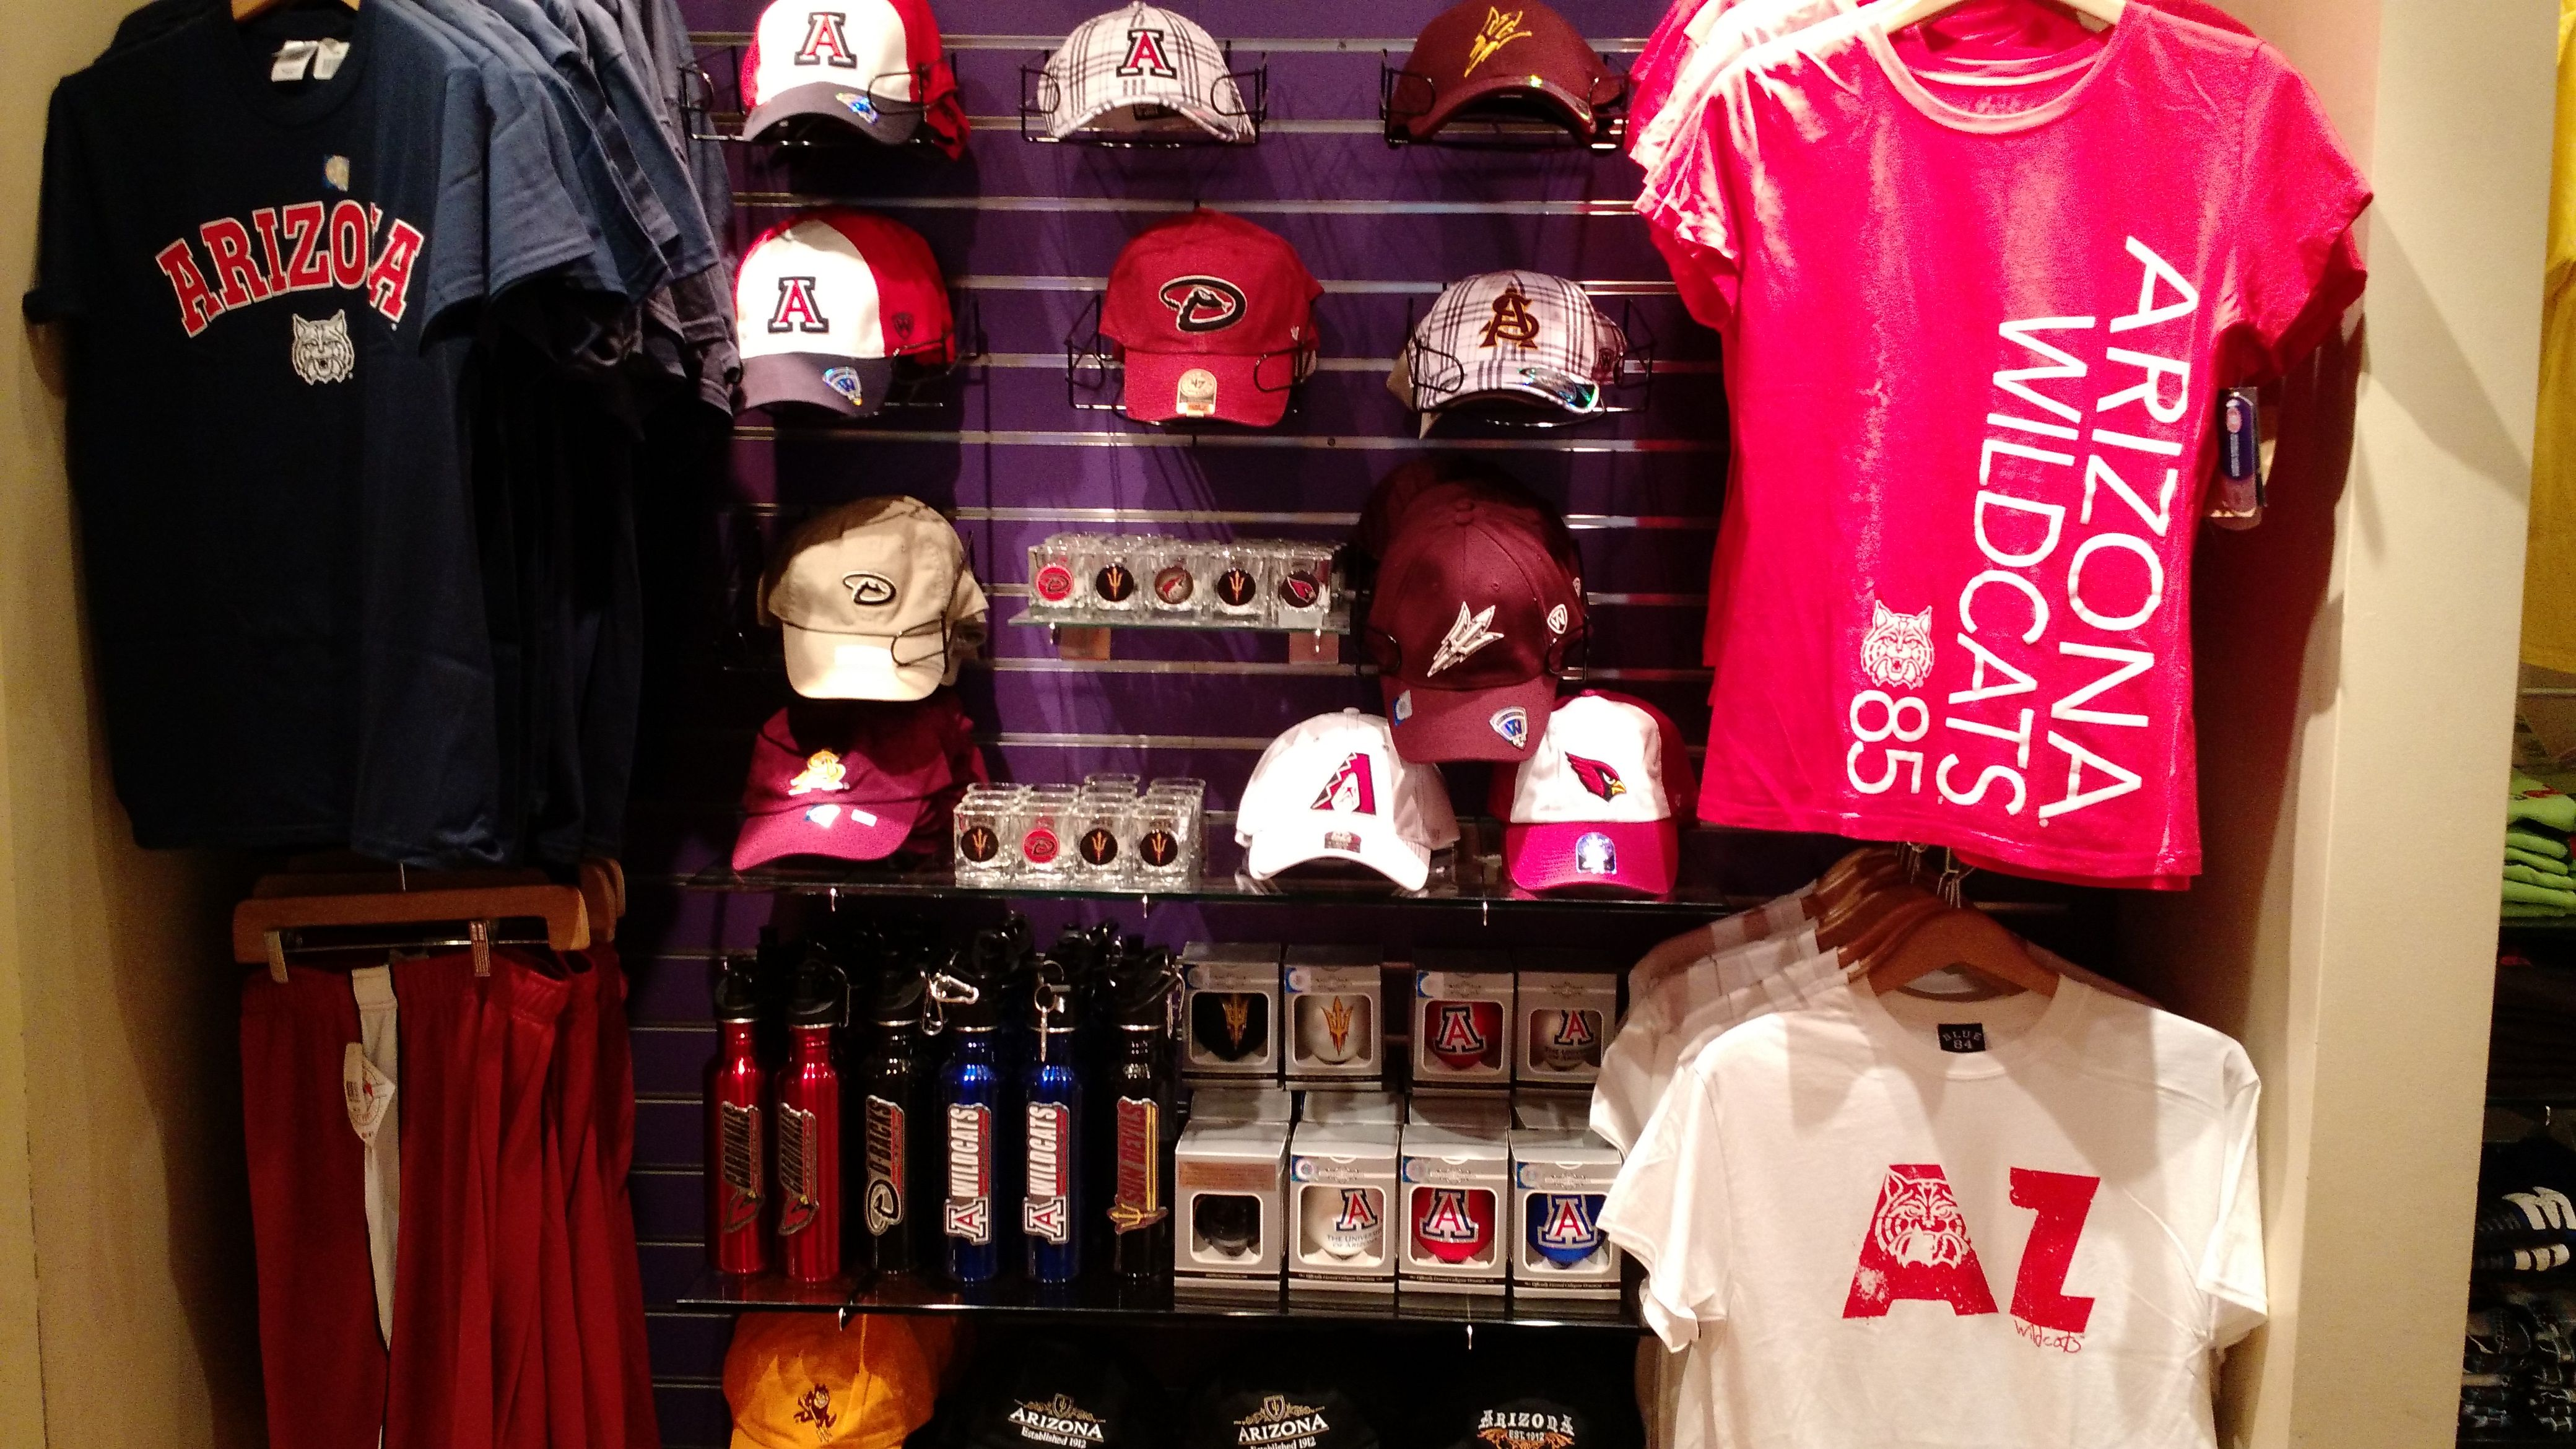 Why not pick up an item or two from Dad's favorite Arizona Sports Team? Located in Terminal 4, pre-security, the Team Shop has a great selection of sports apparel and accessories.